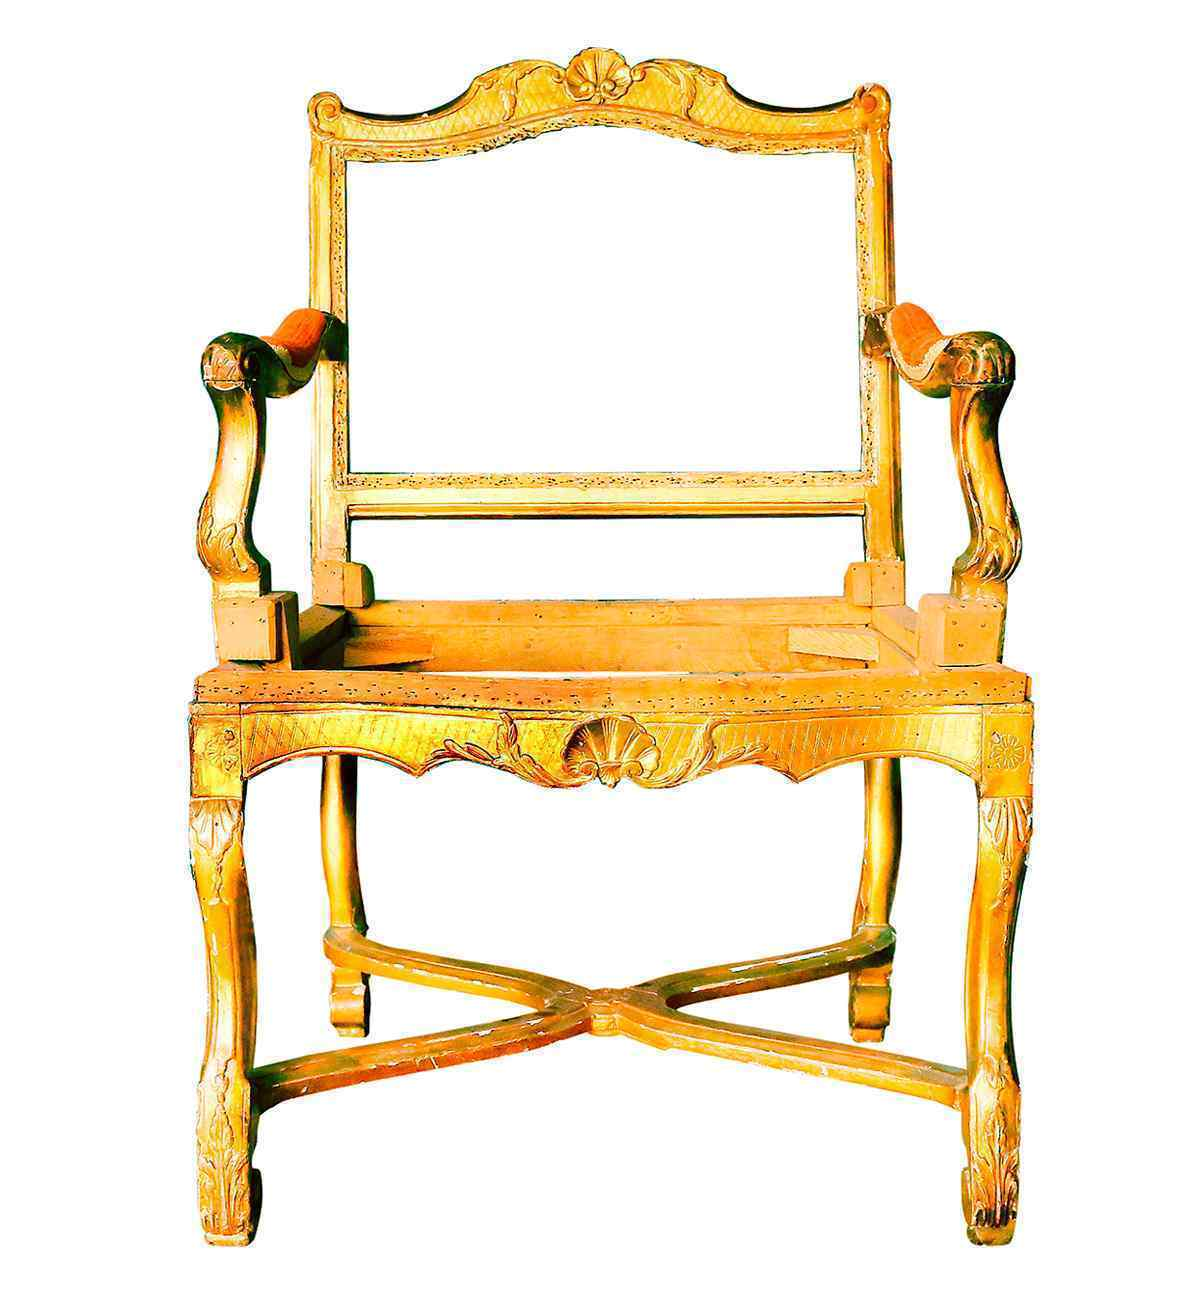 A Regency Armchair 18th century